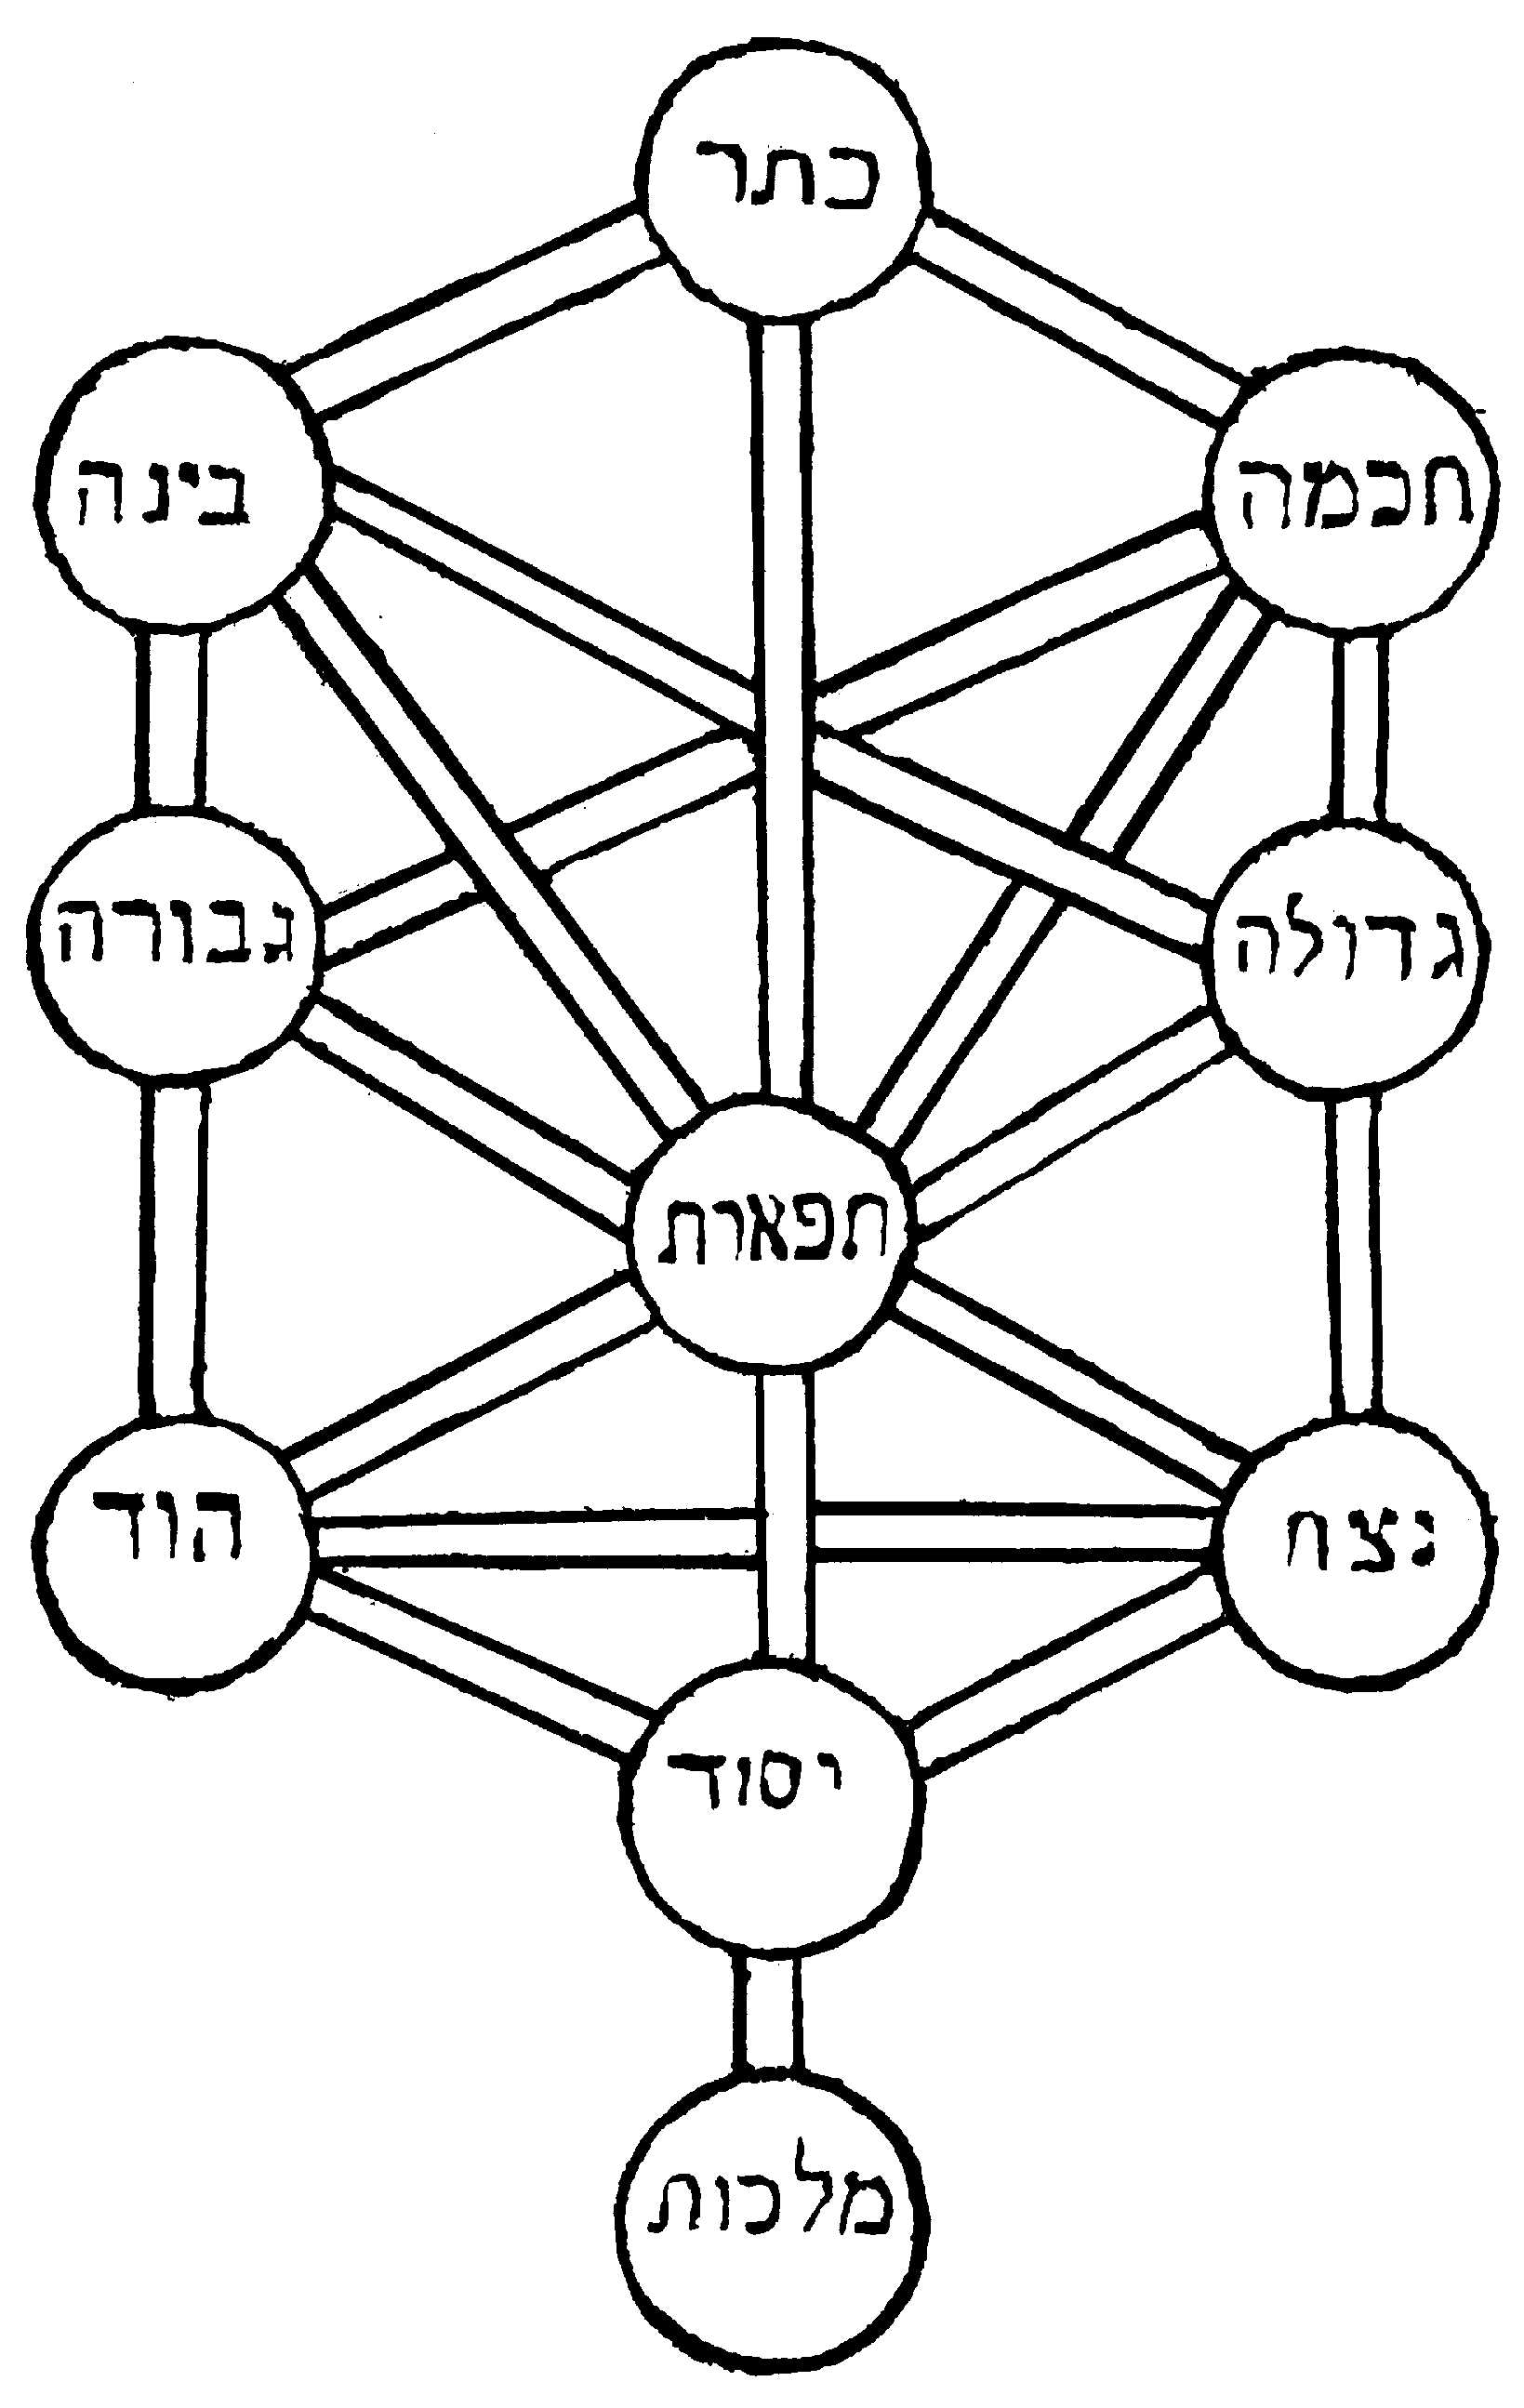 Sefirot as a tree (from Pardes Rimmonim)